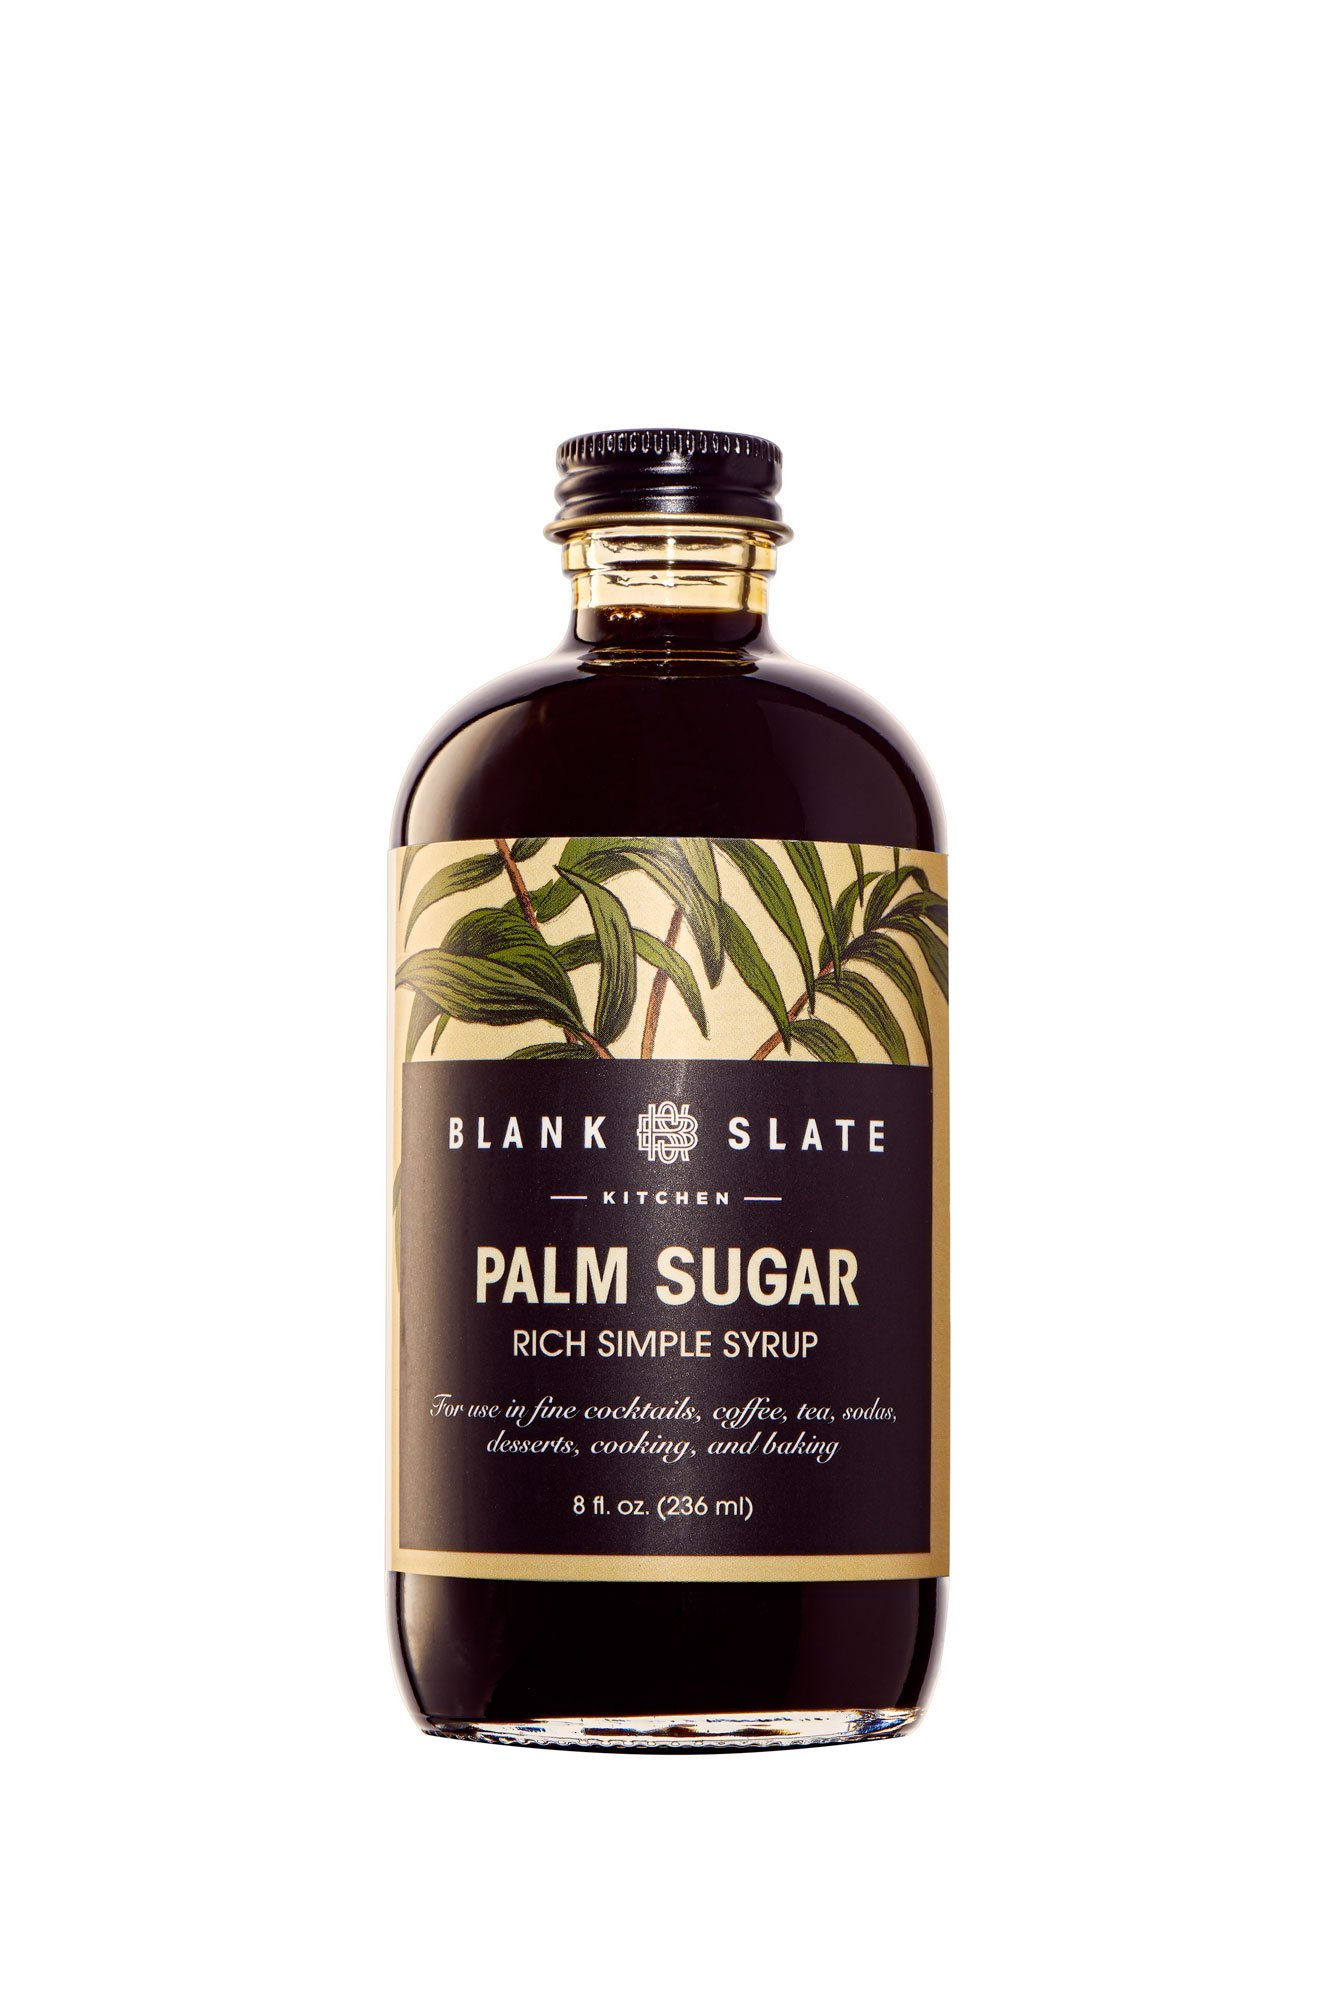 Palm Sugar Rich Simple Syrup | by Blank Slate Kitchen | 8 ounce | Cocktail Mixer or Dessert Topping (pack of 3) by Blank Slate Kitchen